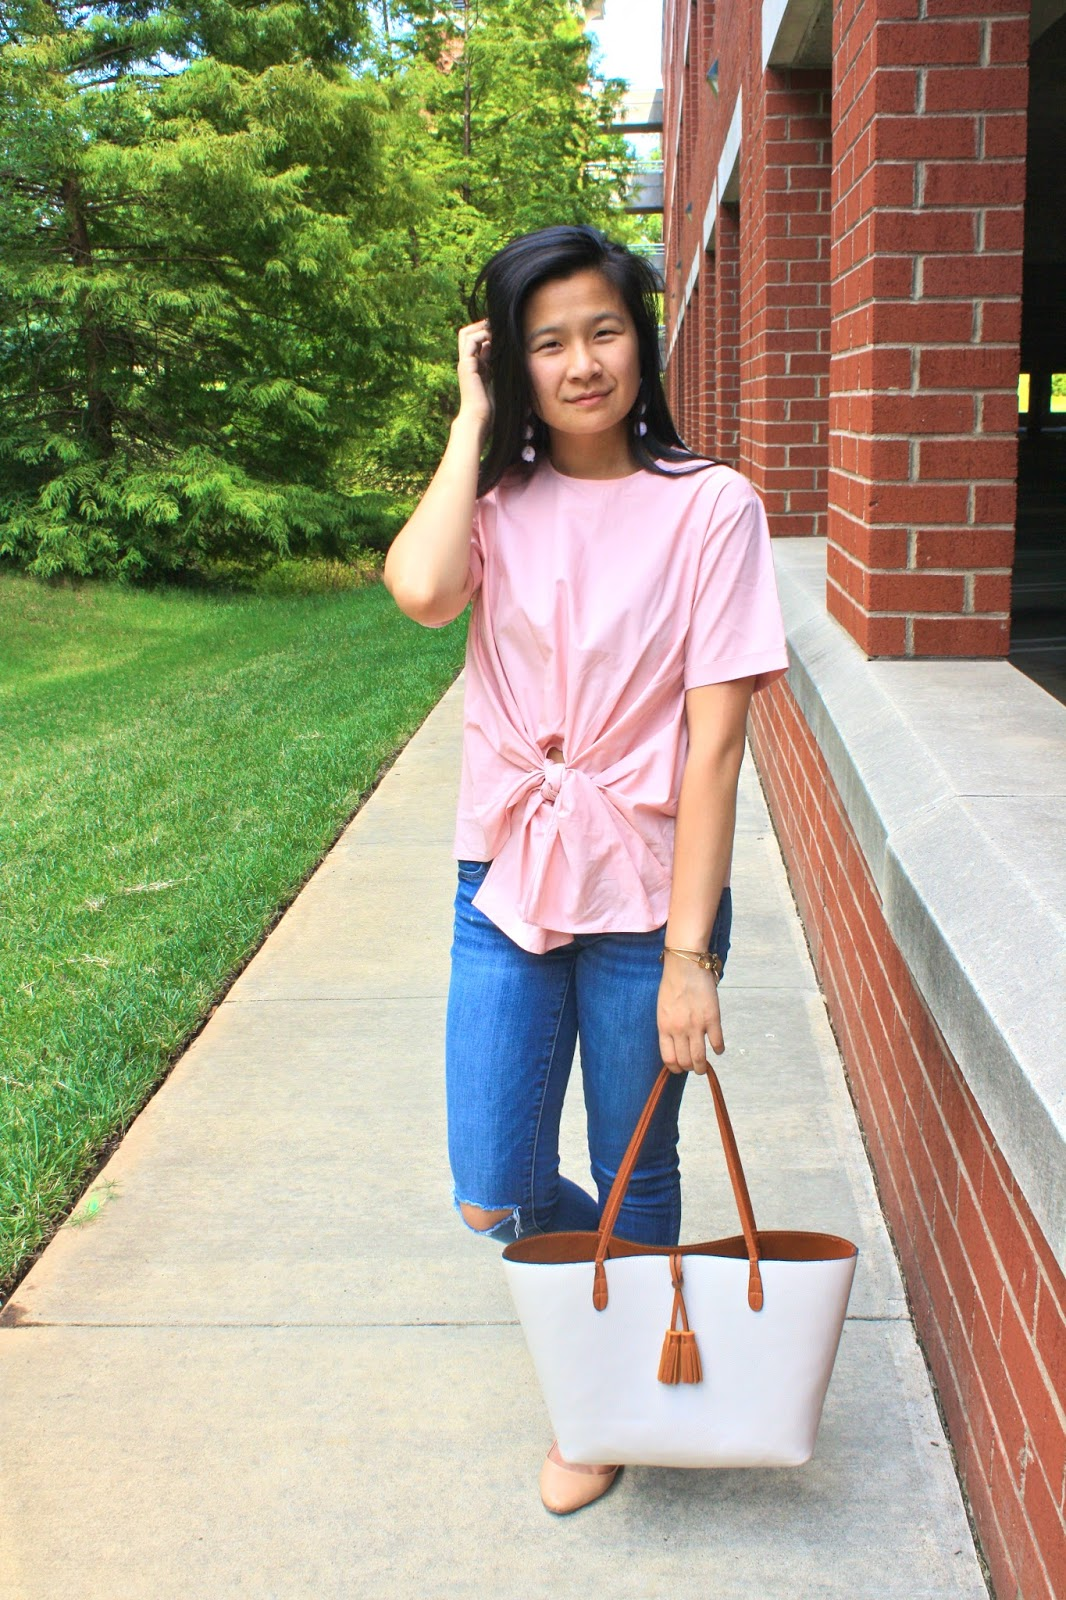 STyling a pink bow tie top